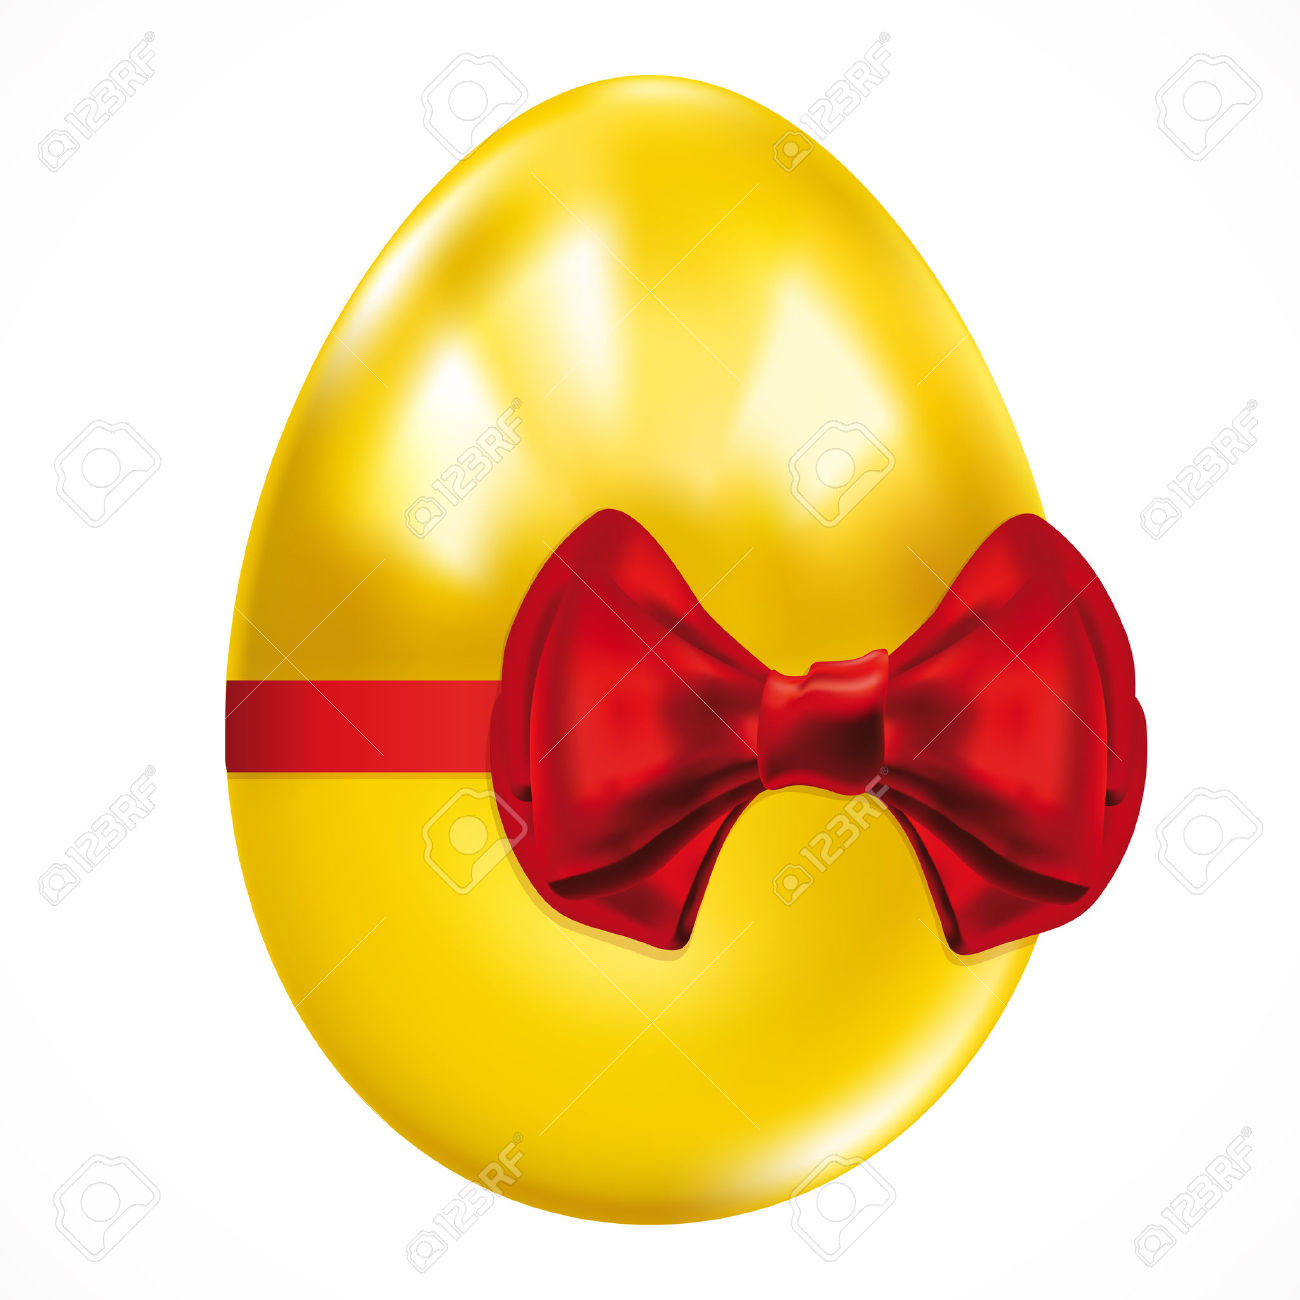 Golden easter egg clipart png - ClipartFest royalty free stock